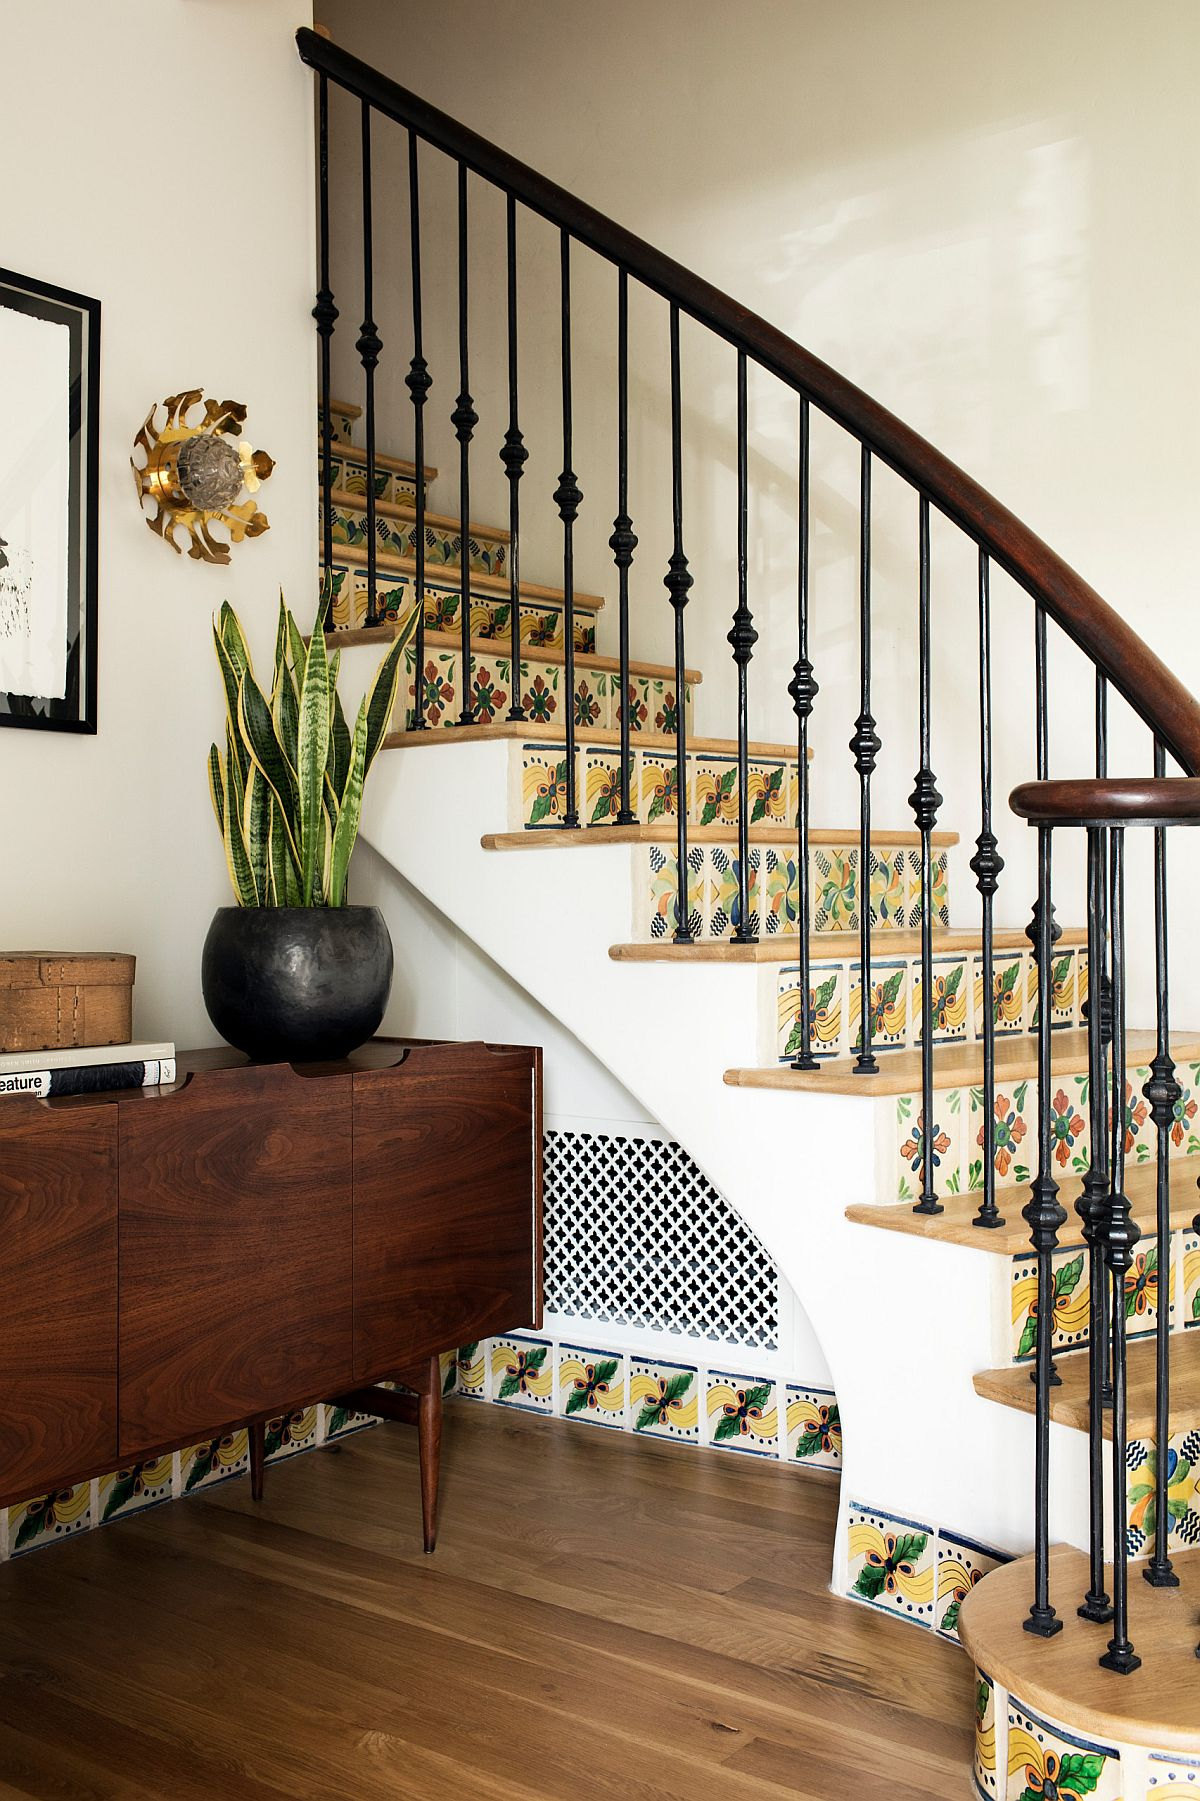 Colorfu-use-of-tiles-and-pattern-for-the-clasic-staircase-inside-the-Spanish-Revival-home-76094